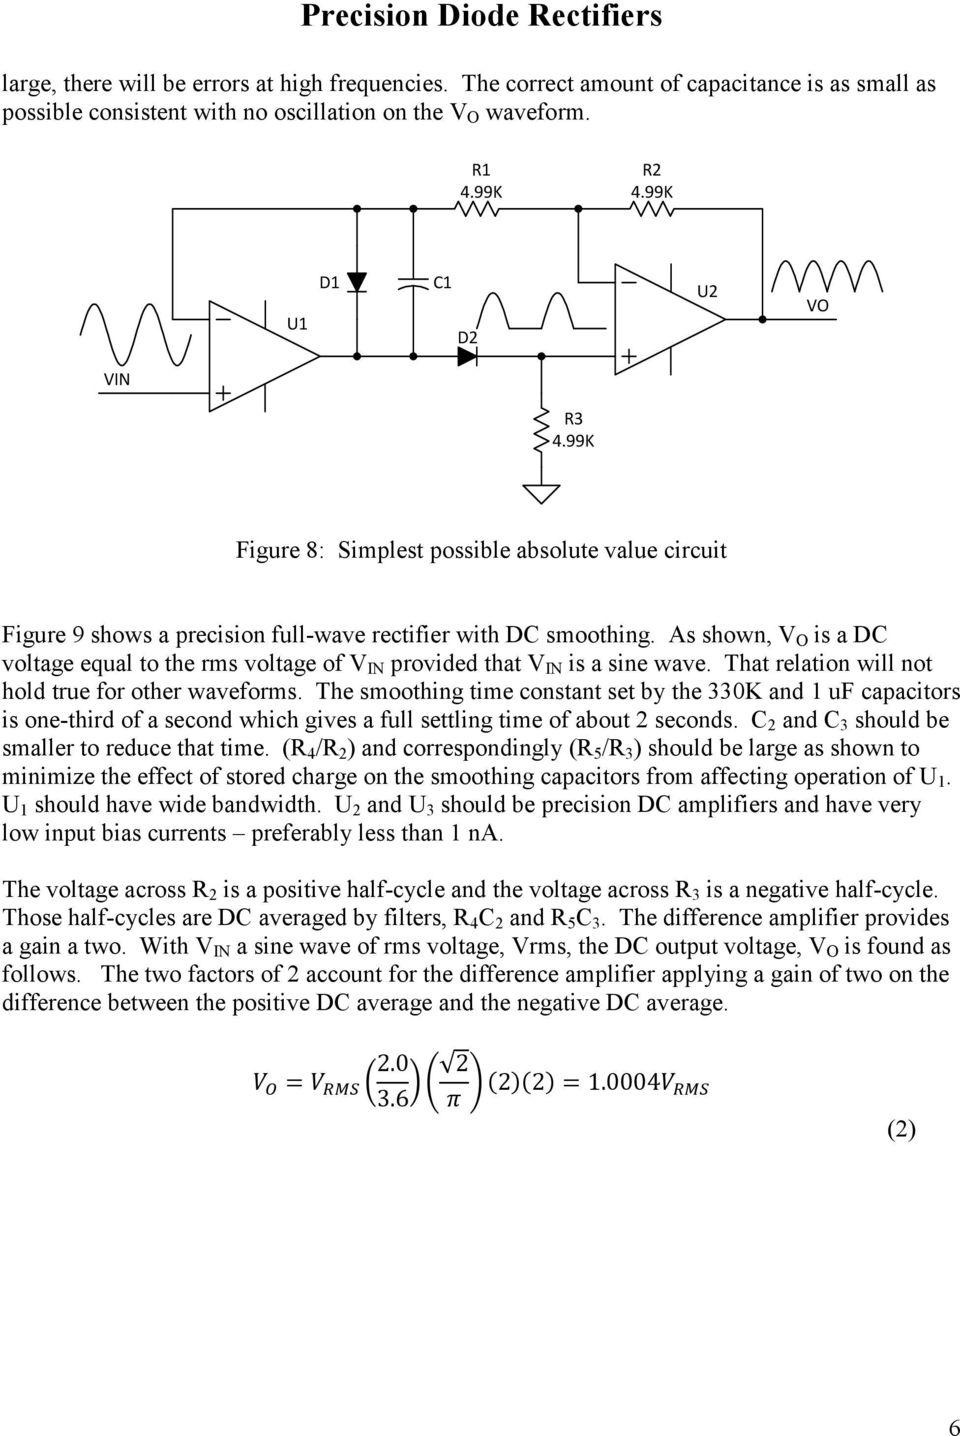 Precision Diode Rectifiers Pdf Waveform From Rectifier Circuit It Can Be Seen The As Shown V O Is A Dc Voltage Equal To Rms Of In 7 Figure 9 Full Wave